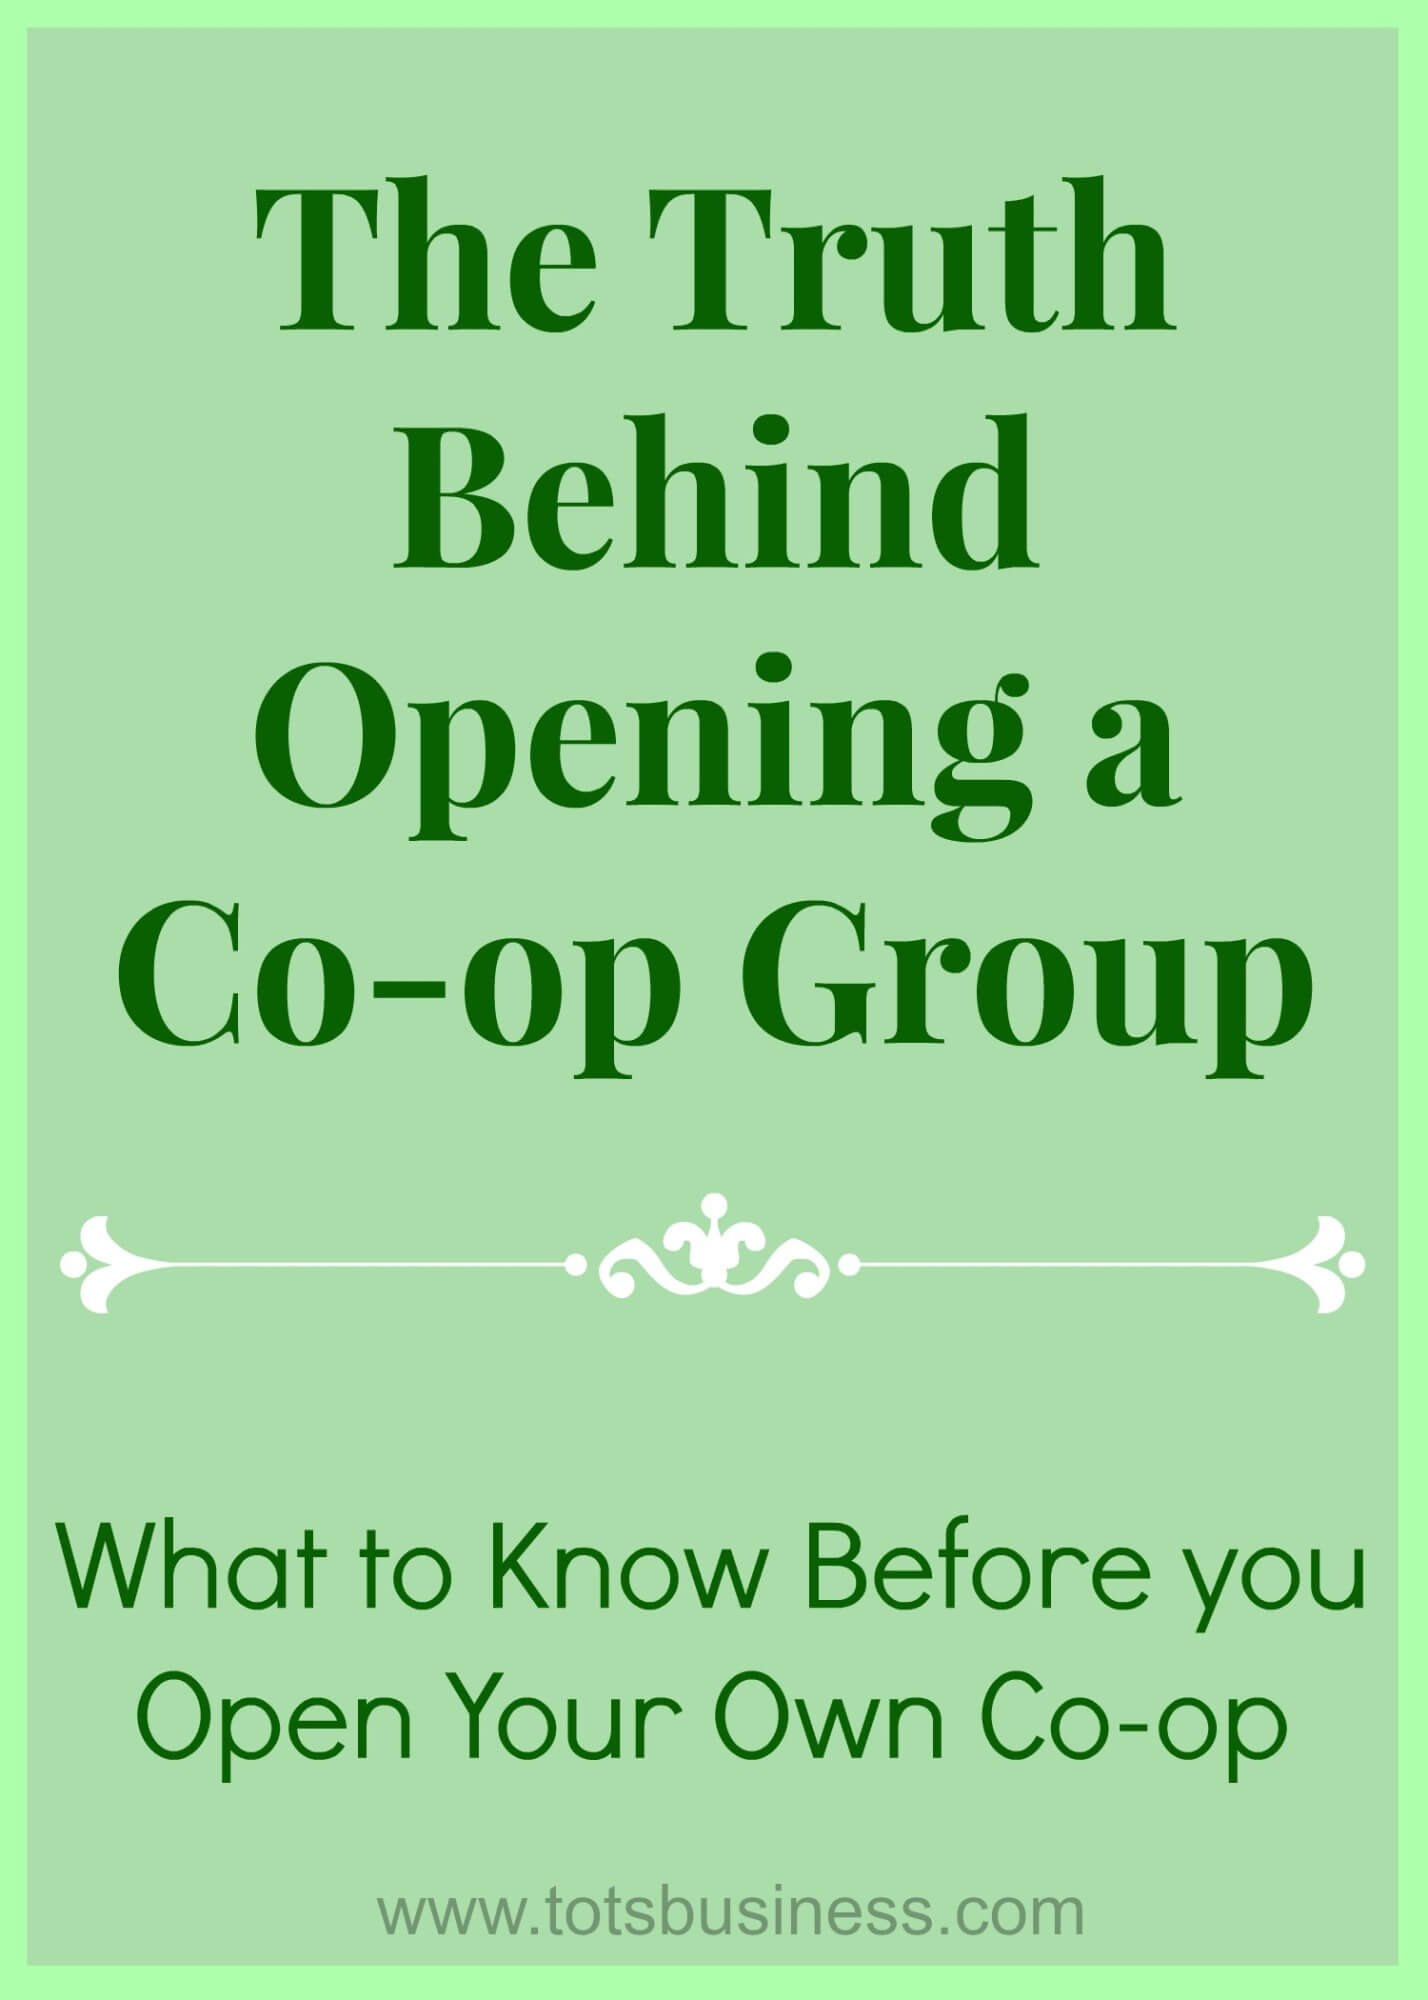 The Truth Behind Running a Co-op Group